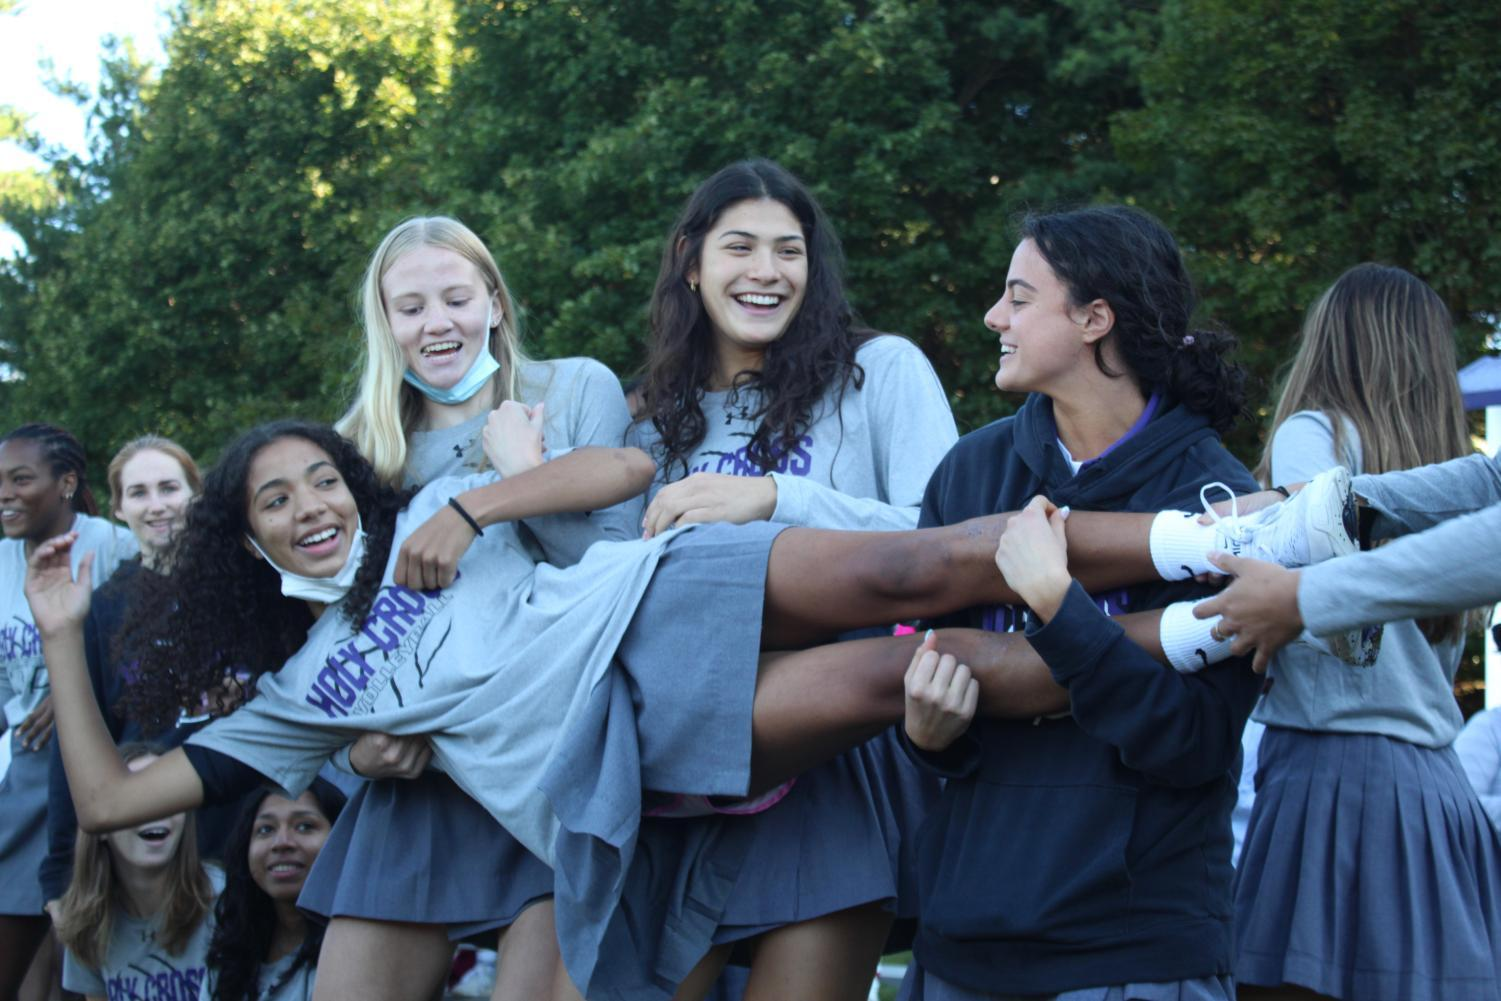 Volleyball team having fun at the pep rally.